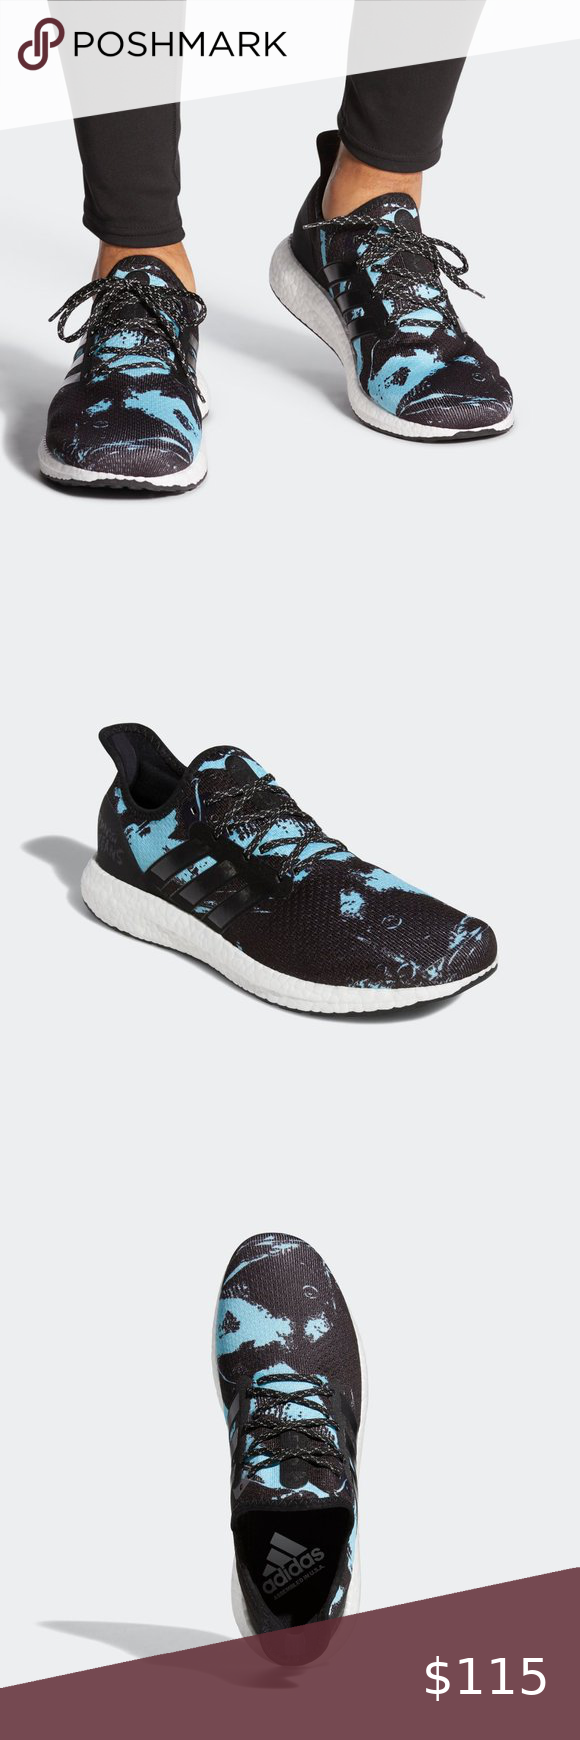 Redundante Tahití revisión  Parley x Speedfactory AM4 RFTO Shoes in 2020   Shoes, Running shoes,  Clothes design